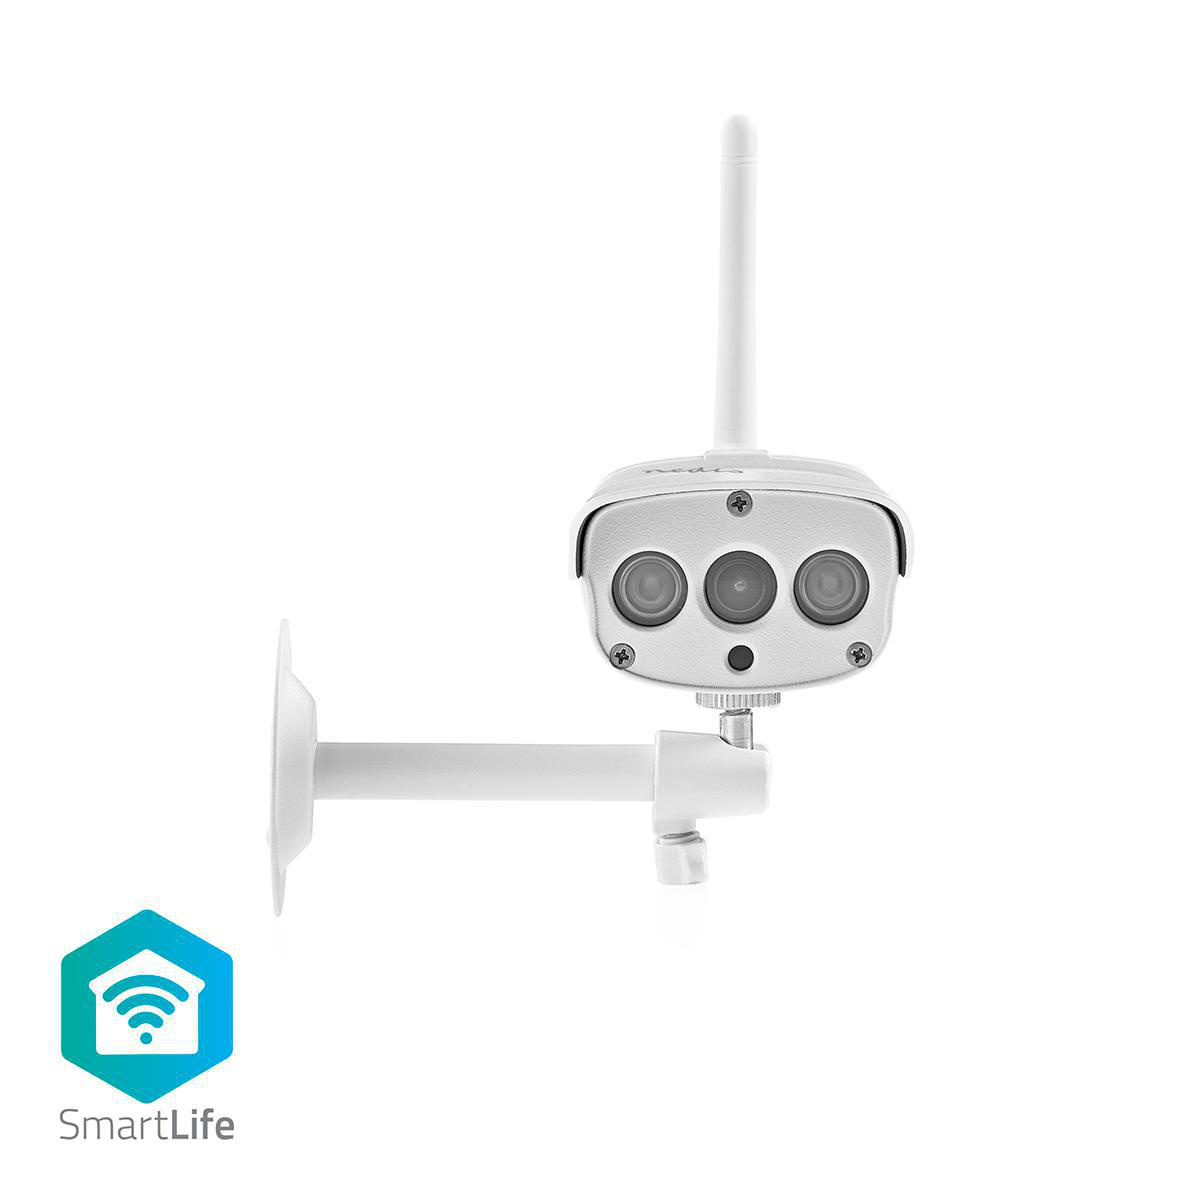 Home automation just got a lot easier. This easy-to-use Smart Outdoor IP camera can be easily connected to your existing Wi-Fi network to monitor the outdoor areas of your home and record any movement.